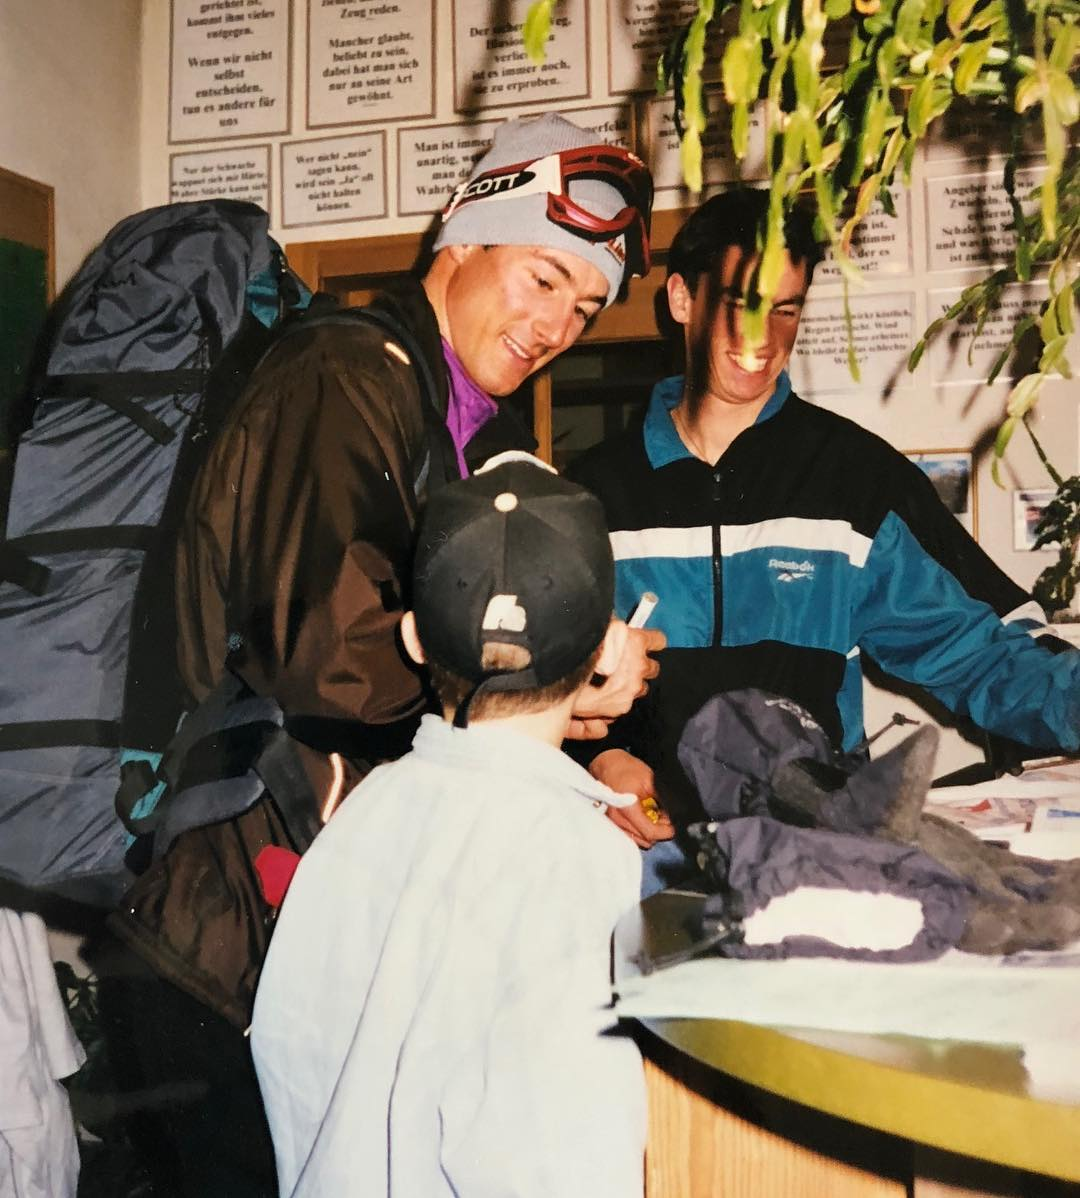 While signing autographs today at the @nationalparkbikemarathon Kids Race, I remembered this moment from 1997 when I got myself a signature from my Fadri Mosca. Fadri then just became World Champion in Heavenly Valley (USA) and came back to his hometown @engadinscuol where I was waiting for him. His riding style and even more his attitude inspired me to start racing as well. Today I can call him a friend, how cool is that?